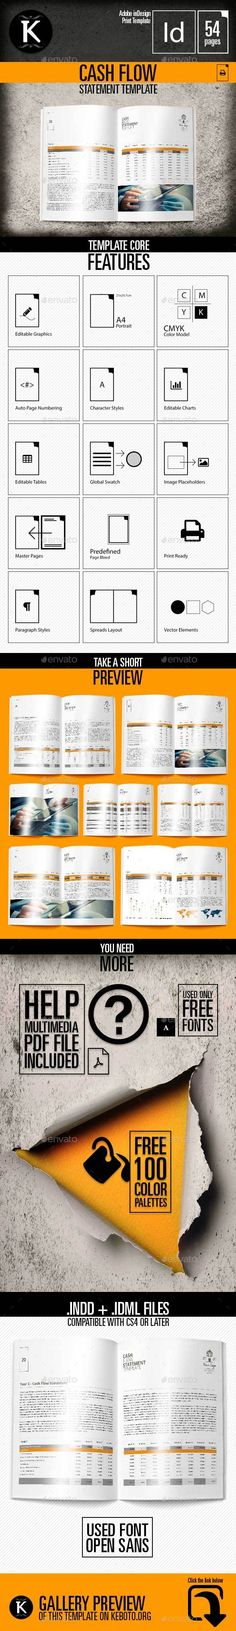 Financial Statement Template Accounting Templates Pinterest - financial report template